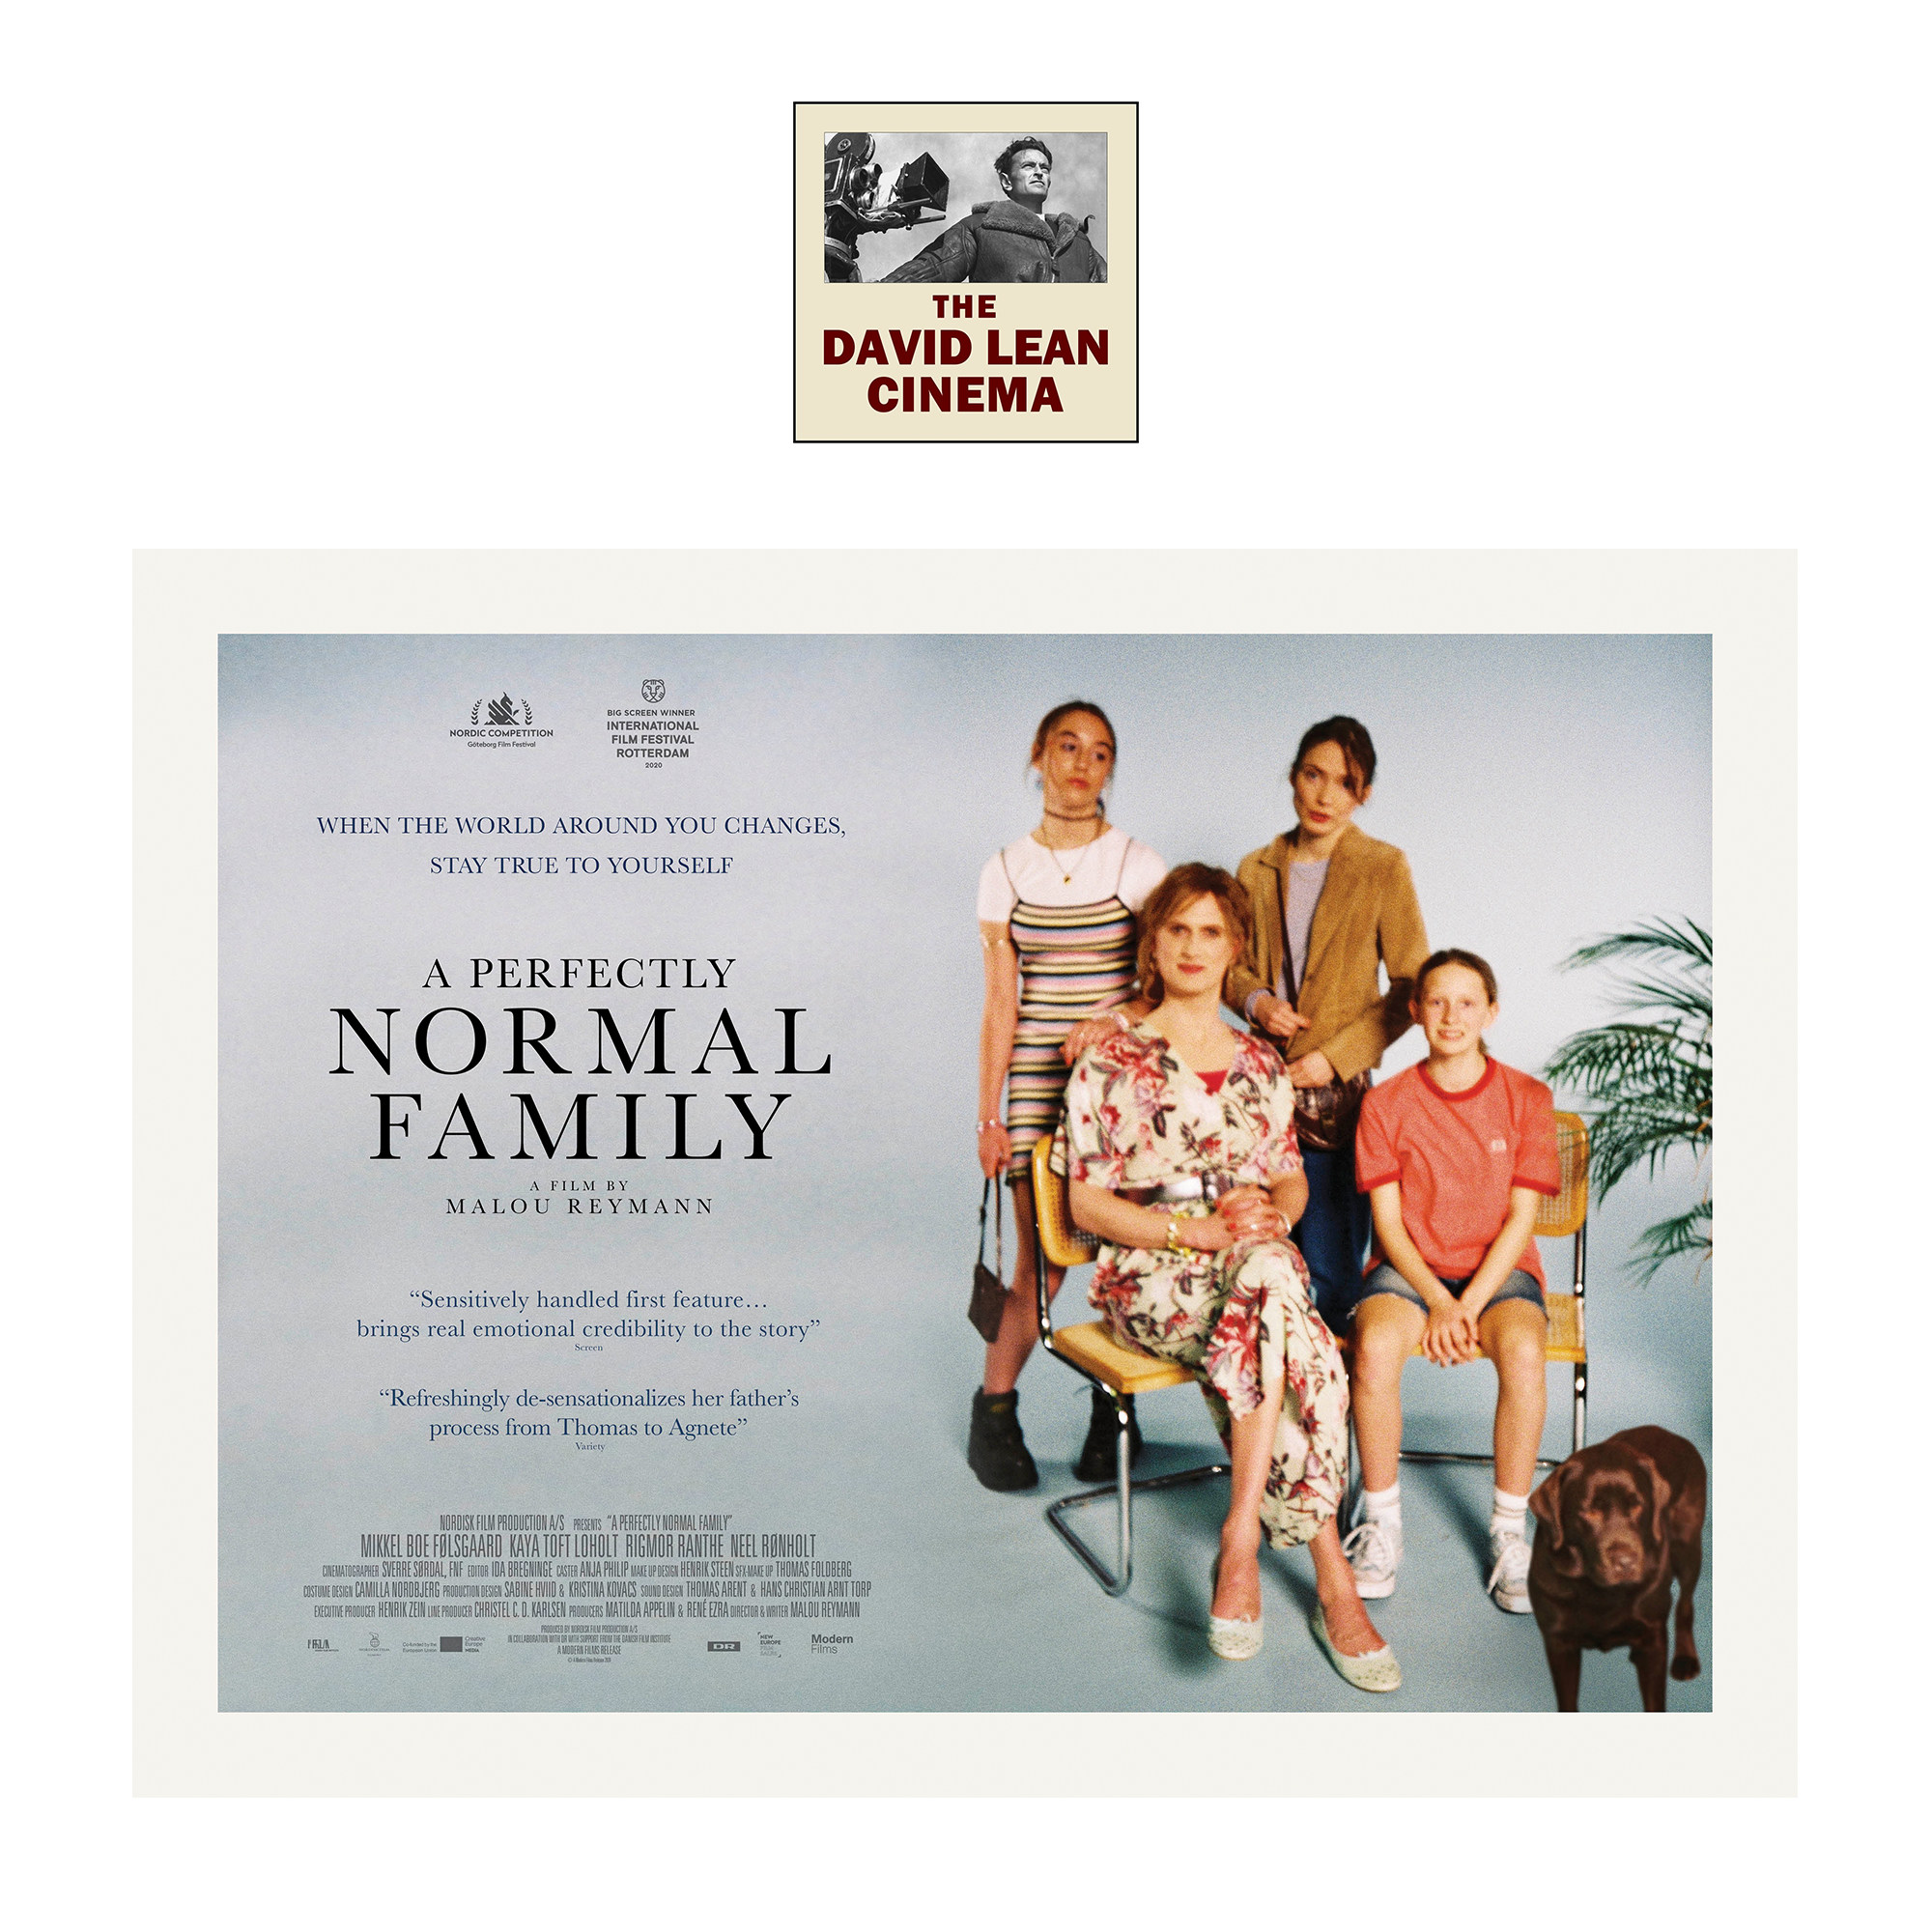 A Perfectly Normal Family at David Lean Cinema